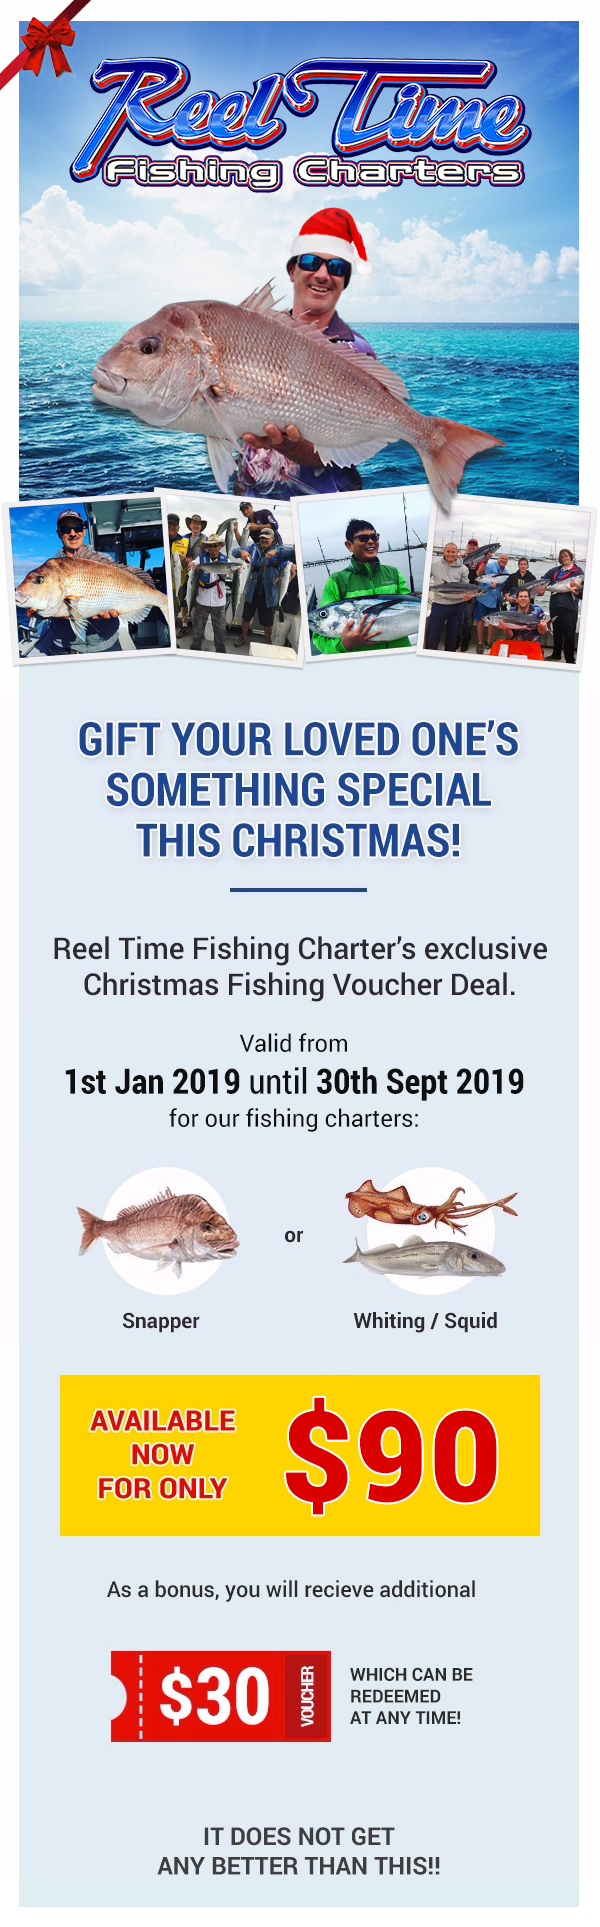 Gift Voucher for Christmas Fishing